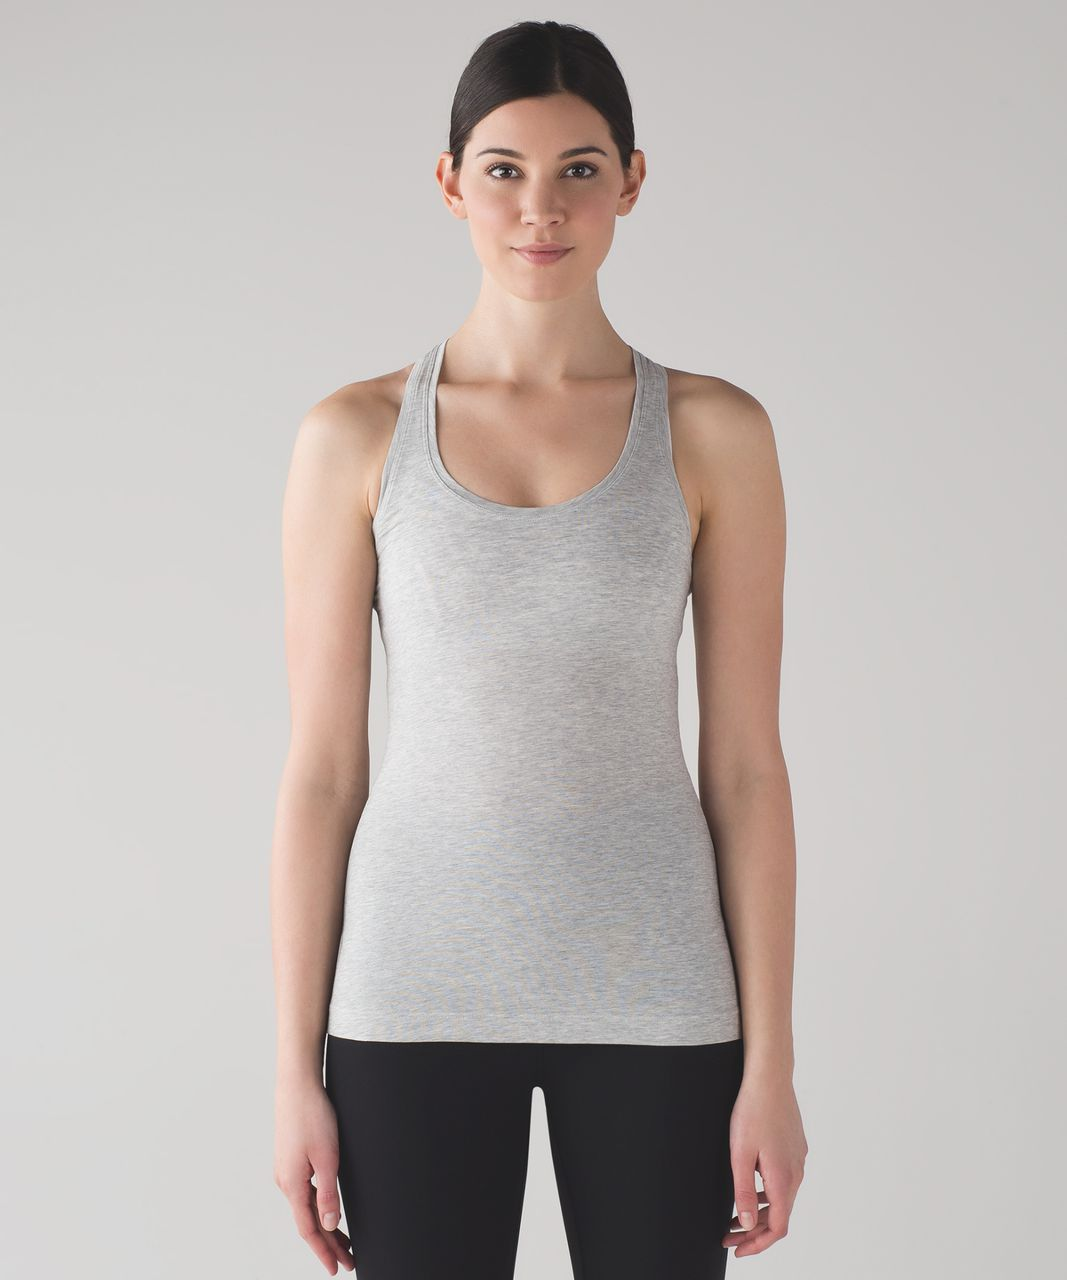 Lululemon Cool Racerback II (Pima) - Heathered Vapor